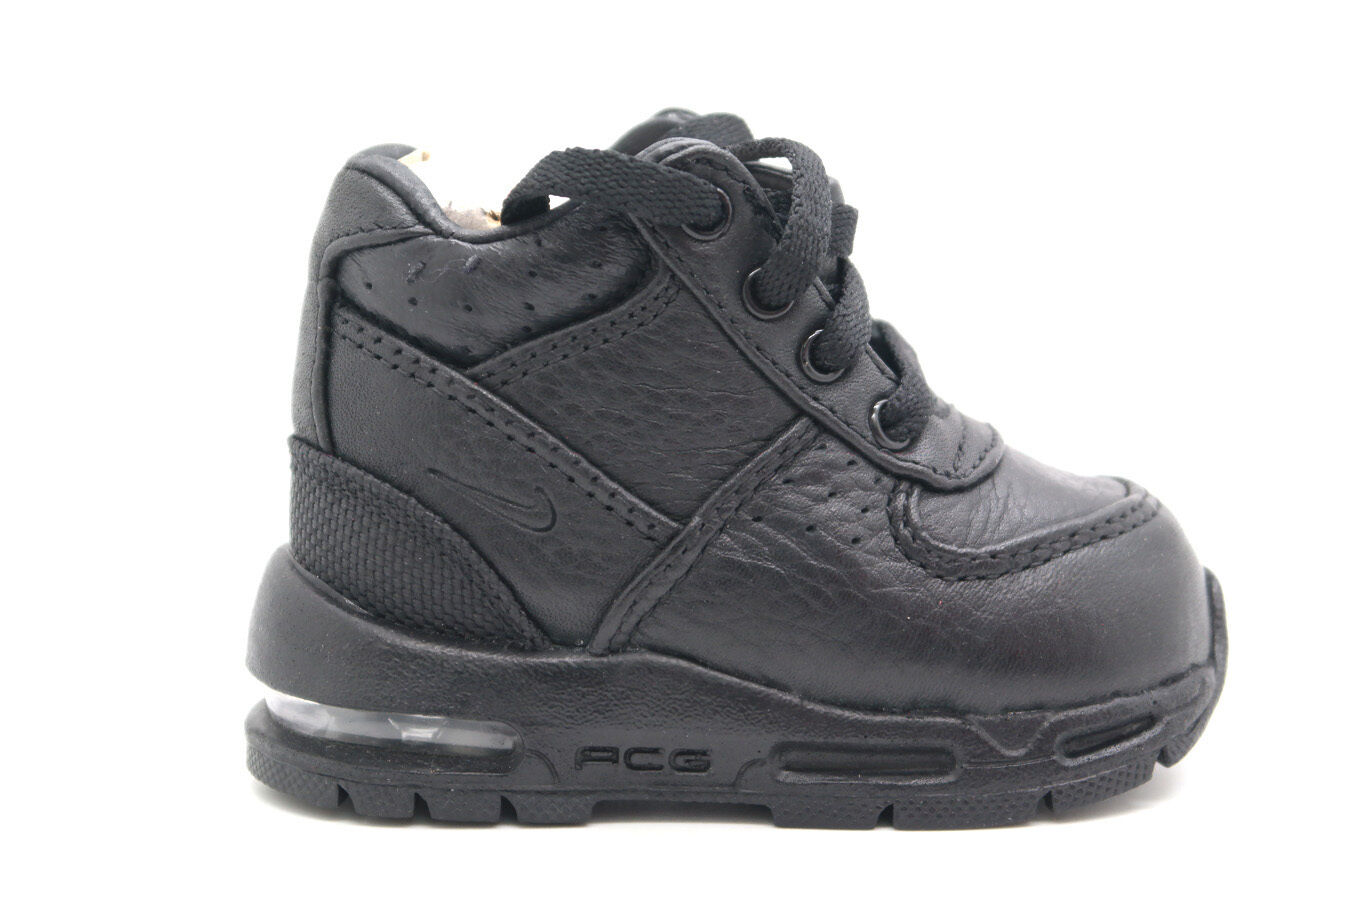 Nike Air Max Goadome Toddlers 311569-001 Black ACG Infant BOOTS Baby Size 2  | eBay